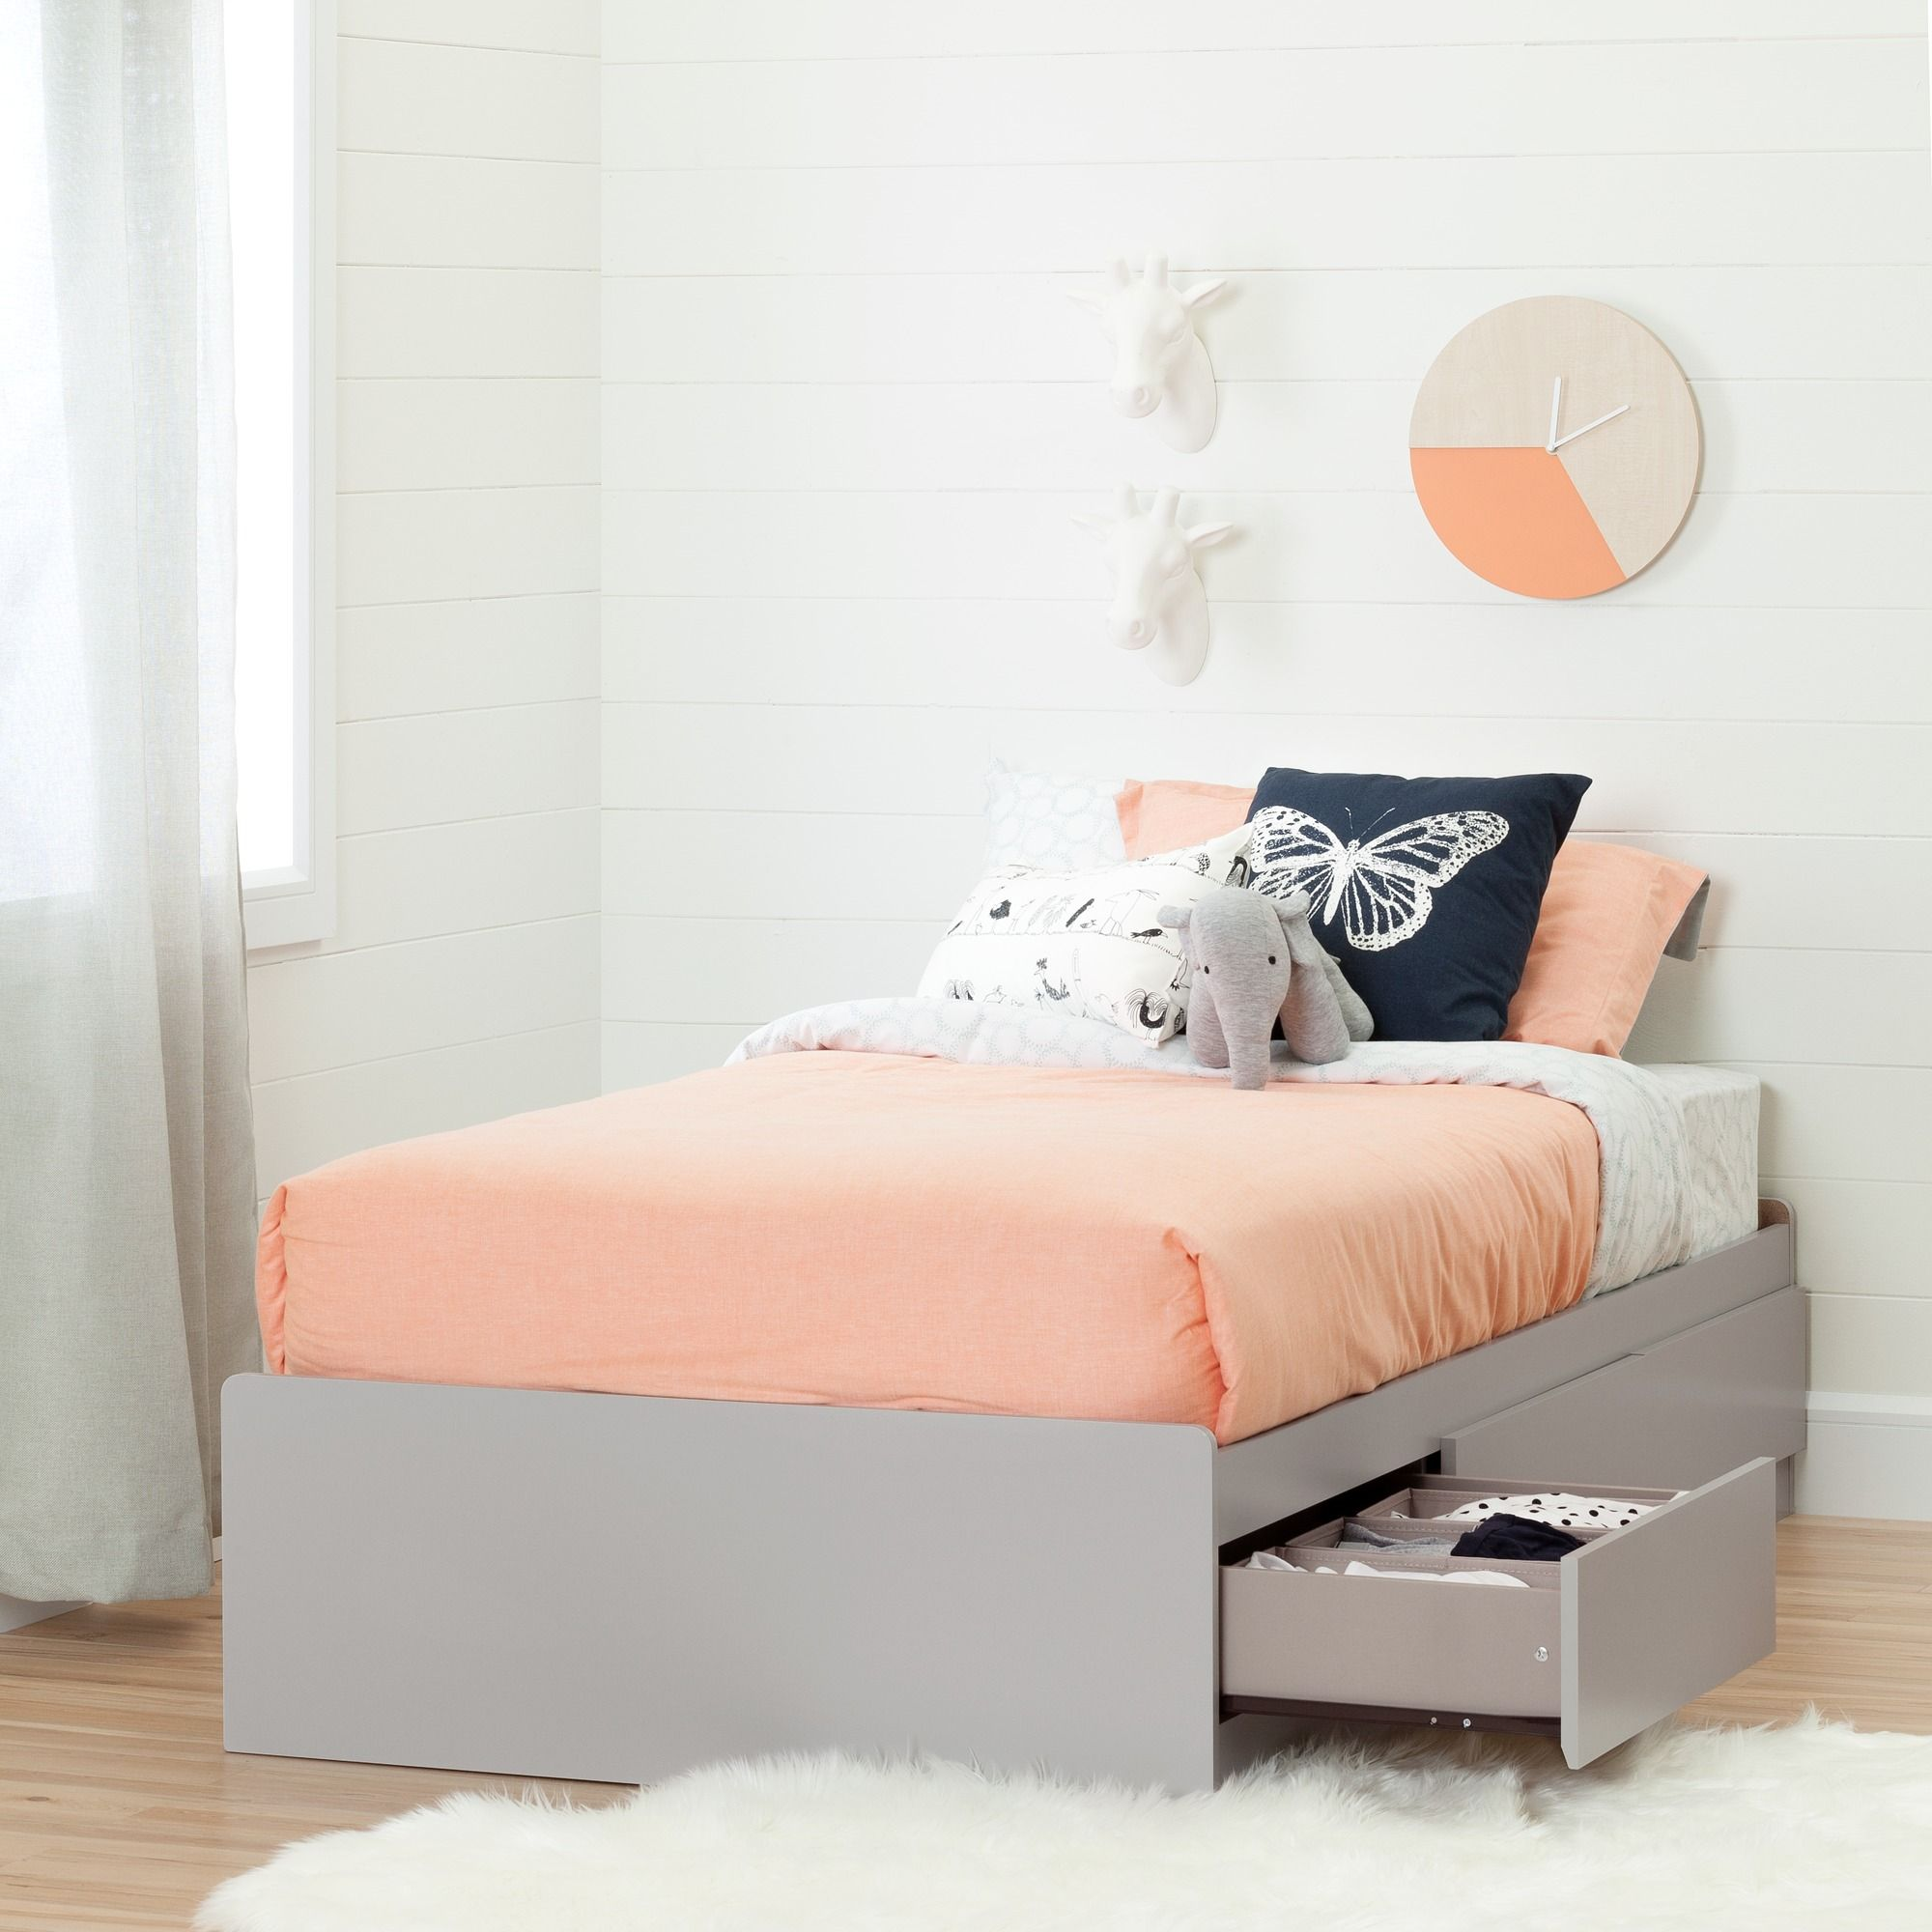 South Shore Cookie Twin Mates Bed 39 With 3 Drawers Soft Gray Twin Storage Bed Kid Beds Bed With Drawers